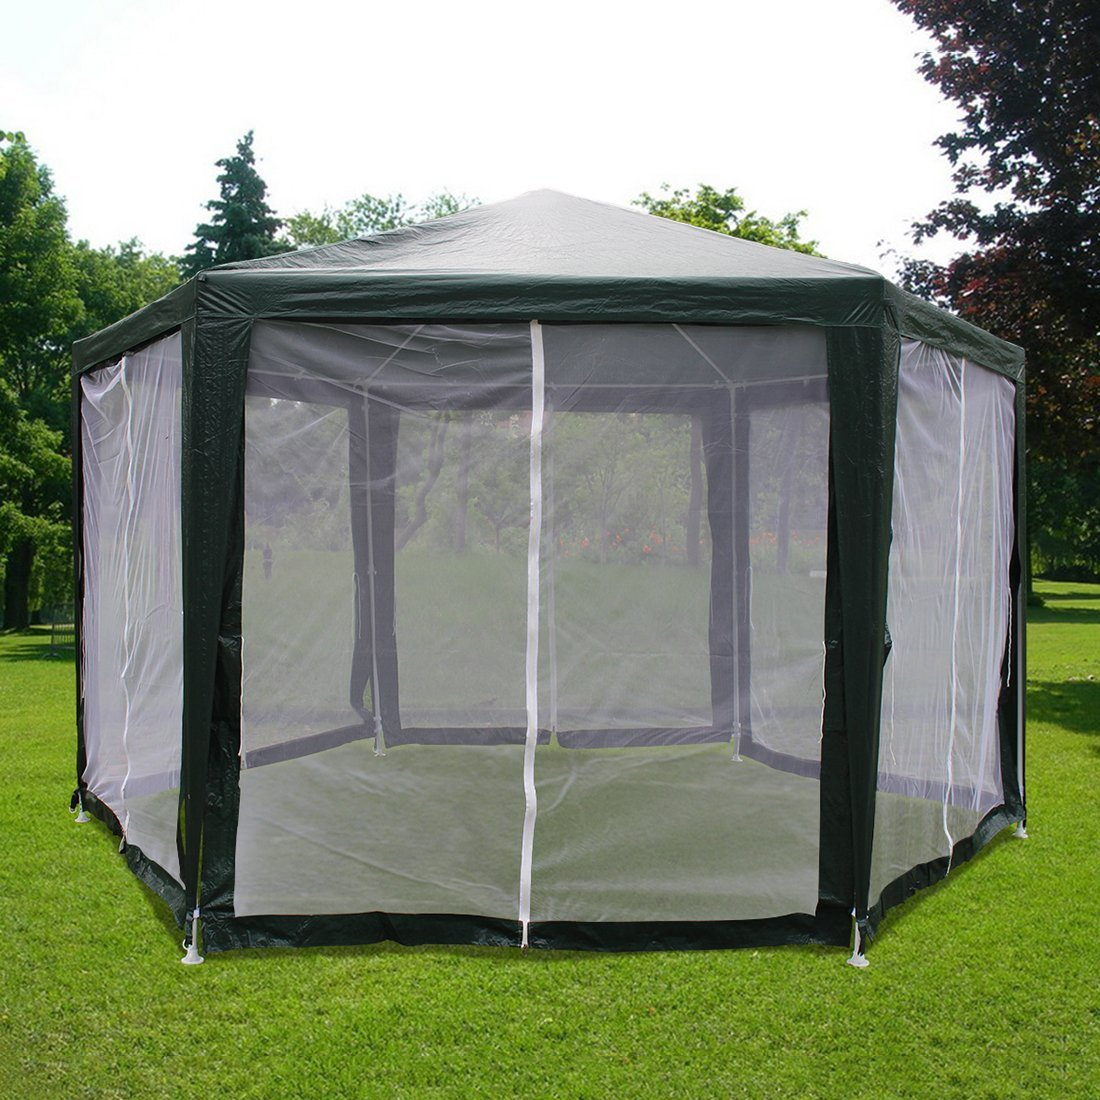 Quictent Outdoor Canopy Gazebo Party Wedding tent Screen House Sun Shade Shelter with Fully Enclosed Mesh : canopy tent with screen sides - memphite.com